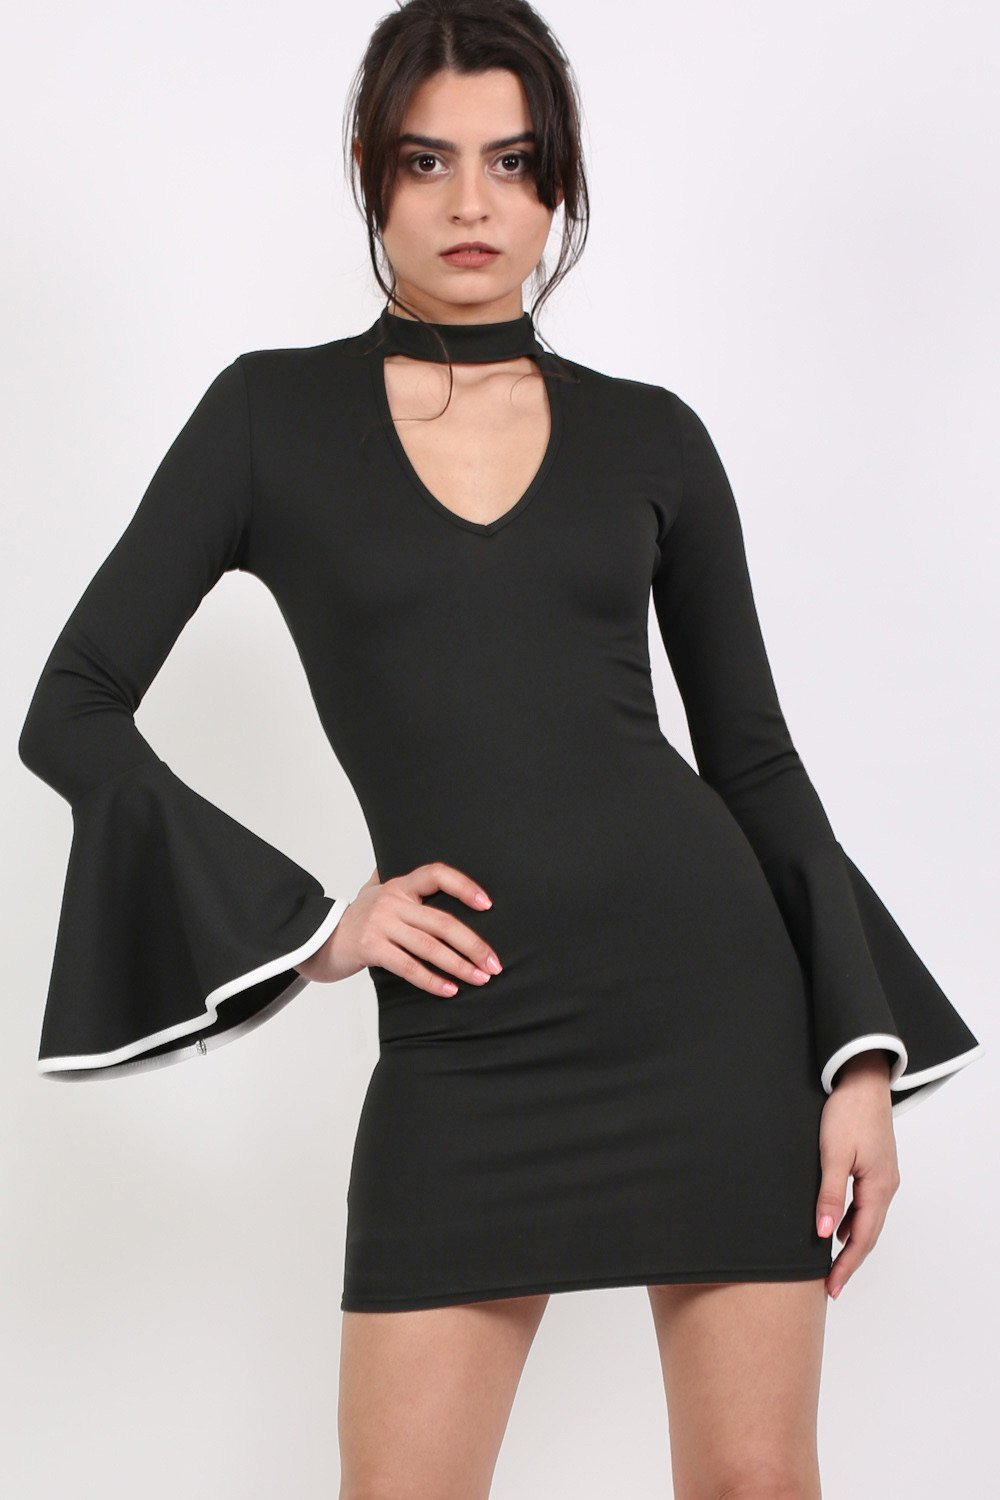 Bell Sleeve Choker Neck Bodycon Dress in Black 0